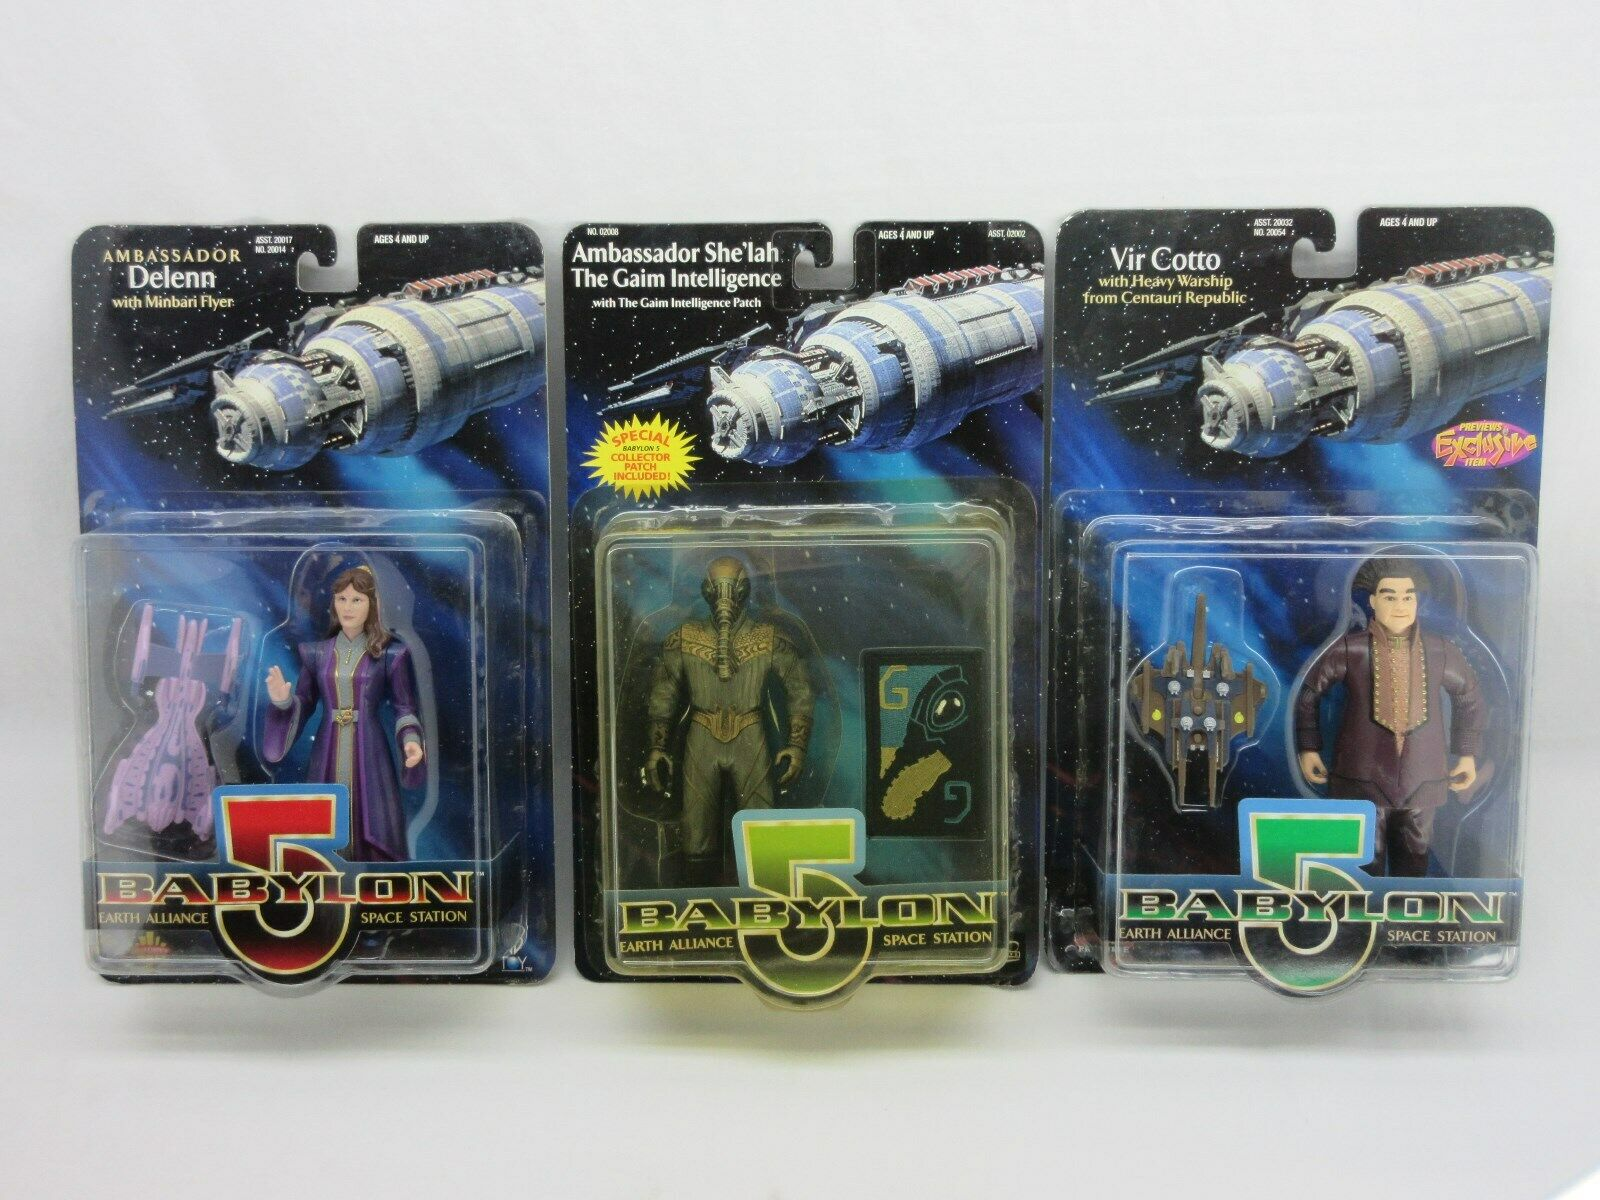 Babylon 5,Lot of 3 action figures,sealed,MOC,Delenn,Ambassador She'lah,Vir Cotto